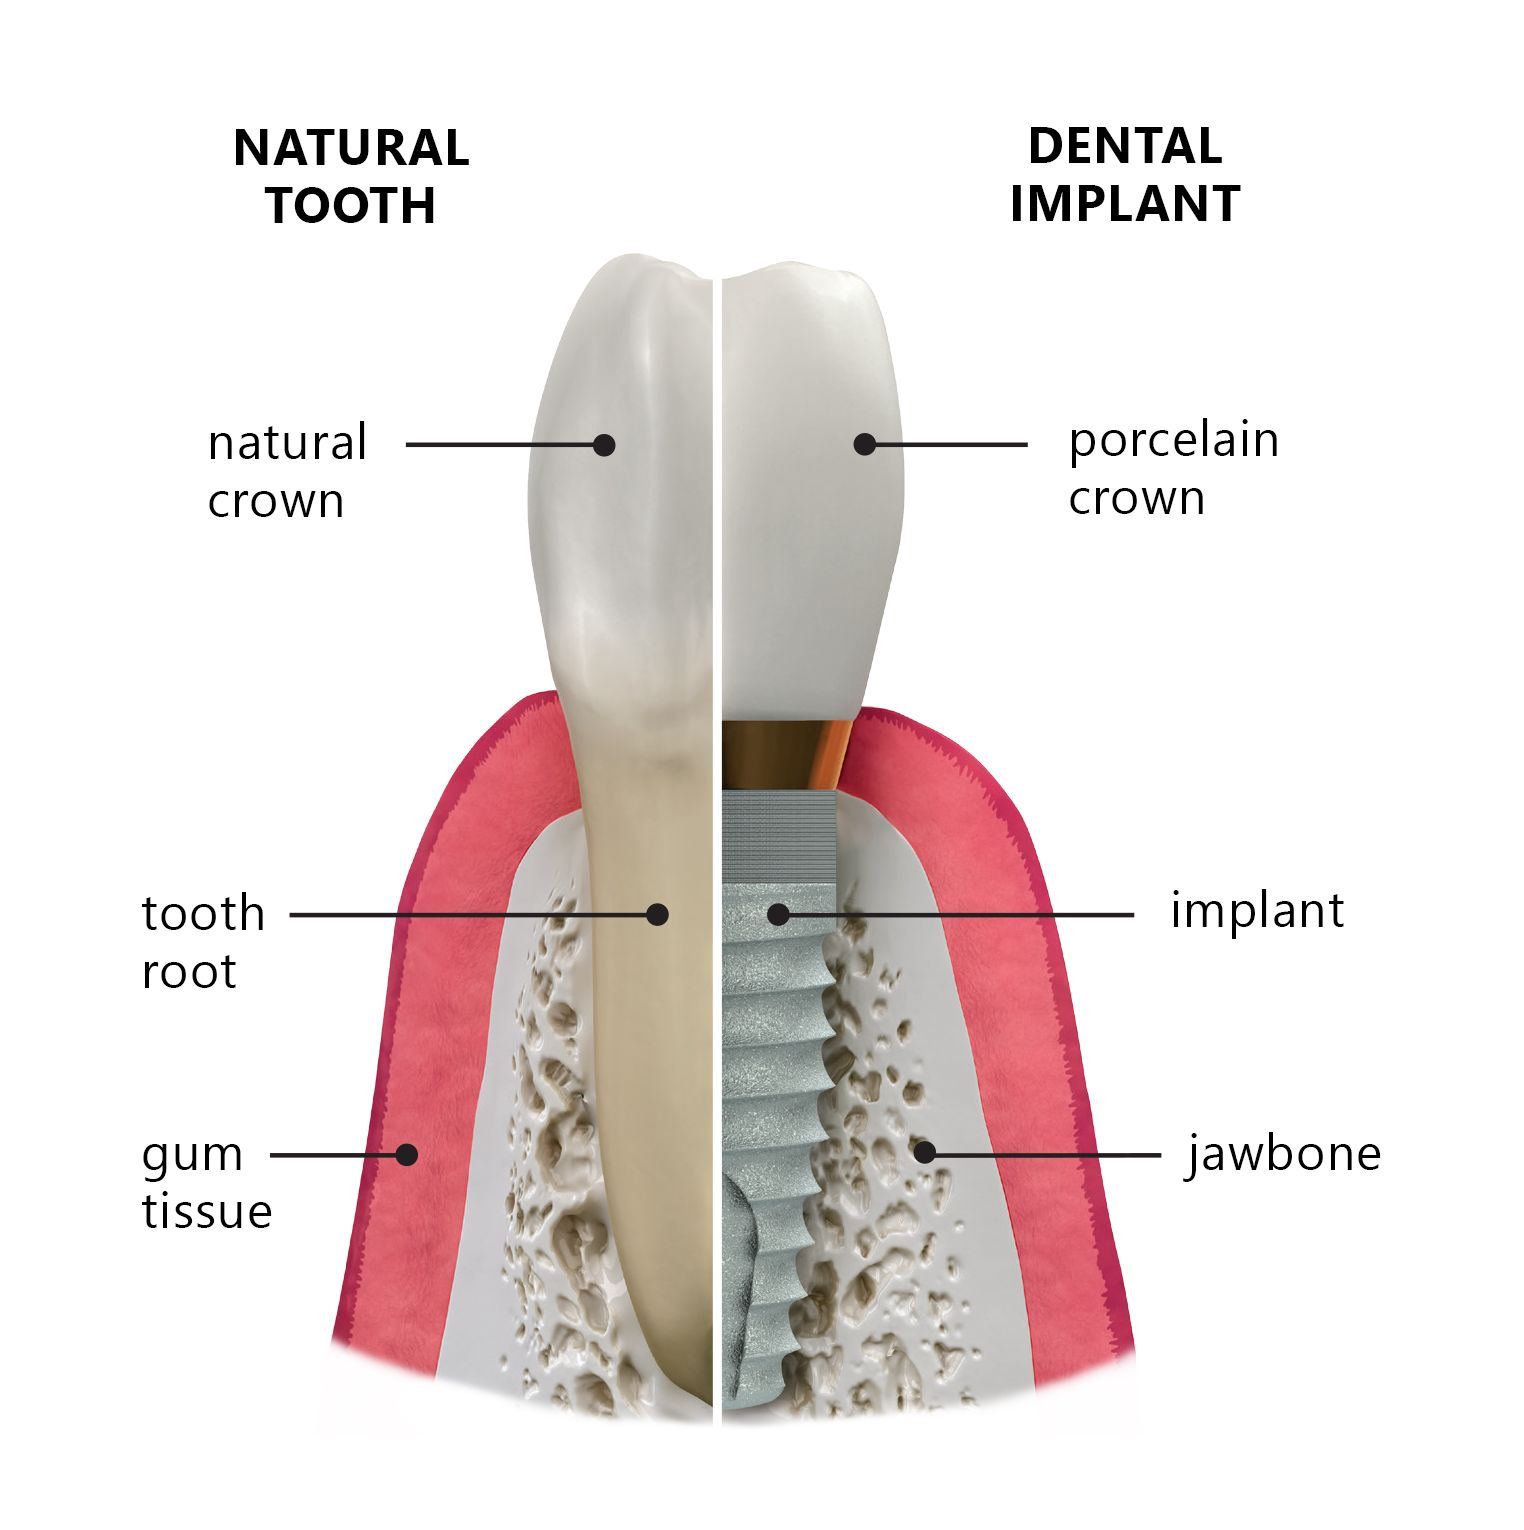 Dental Implant Quotes A Dental Implant Is A Titanium Screw That Is Surgically Positioned